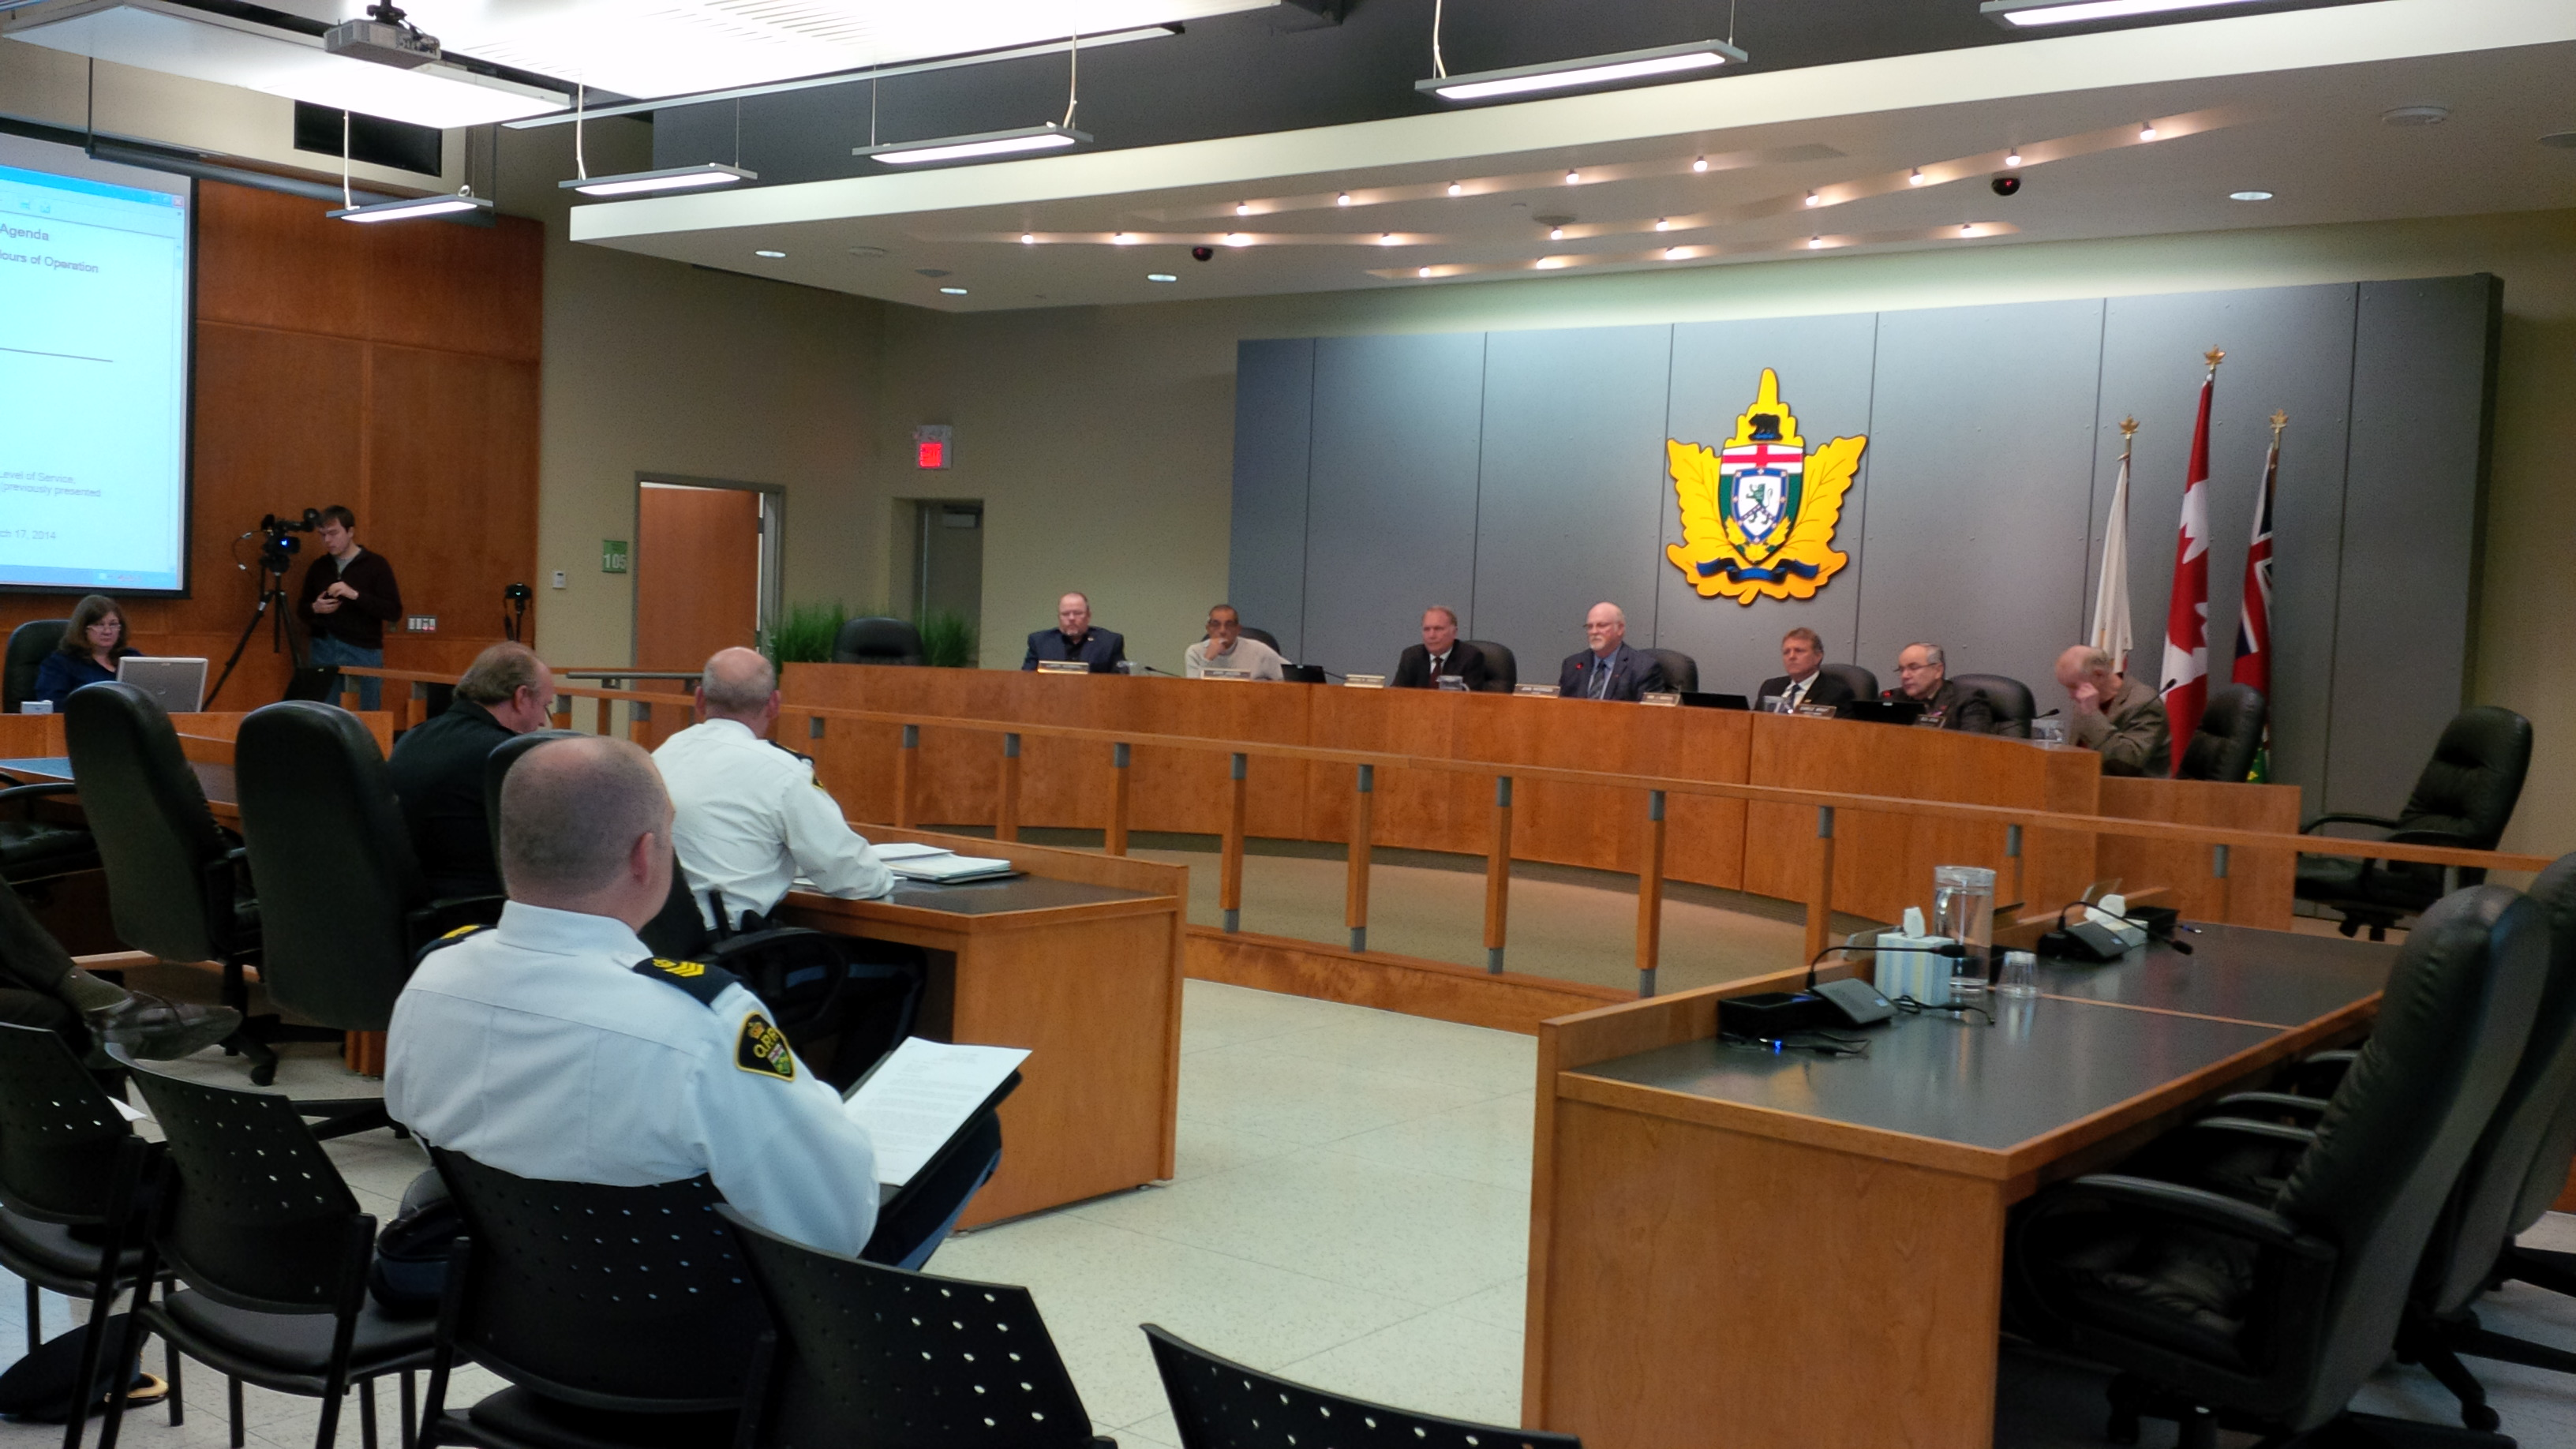 Leamington Council holds a special meeting to discuss operating hours for local OPP station on March 31, 2014. (Photo by Ricardo Veneza)